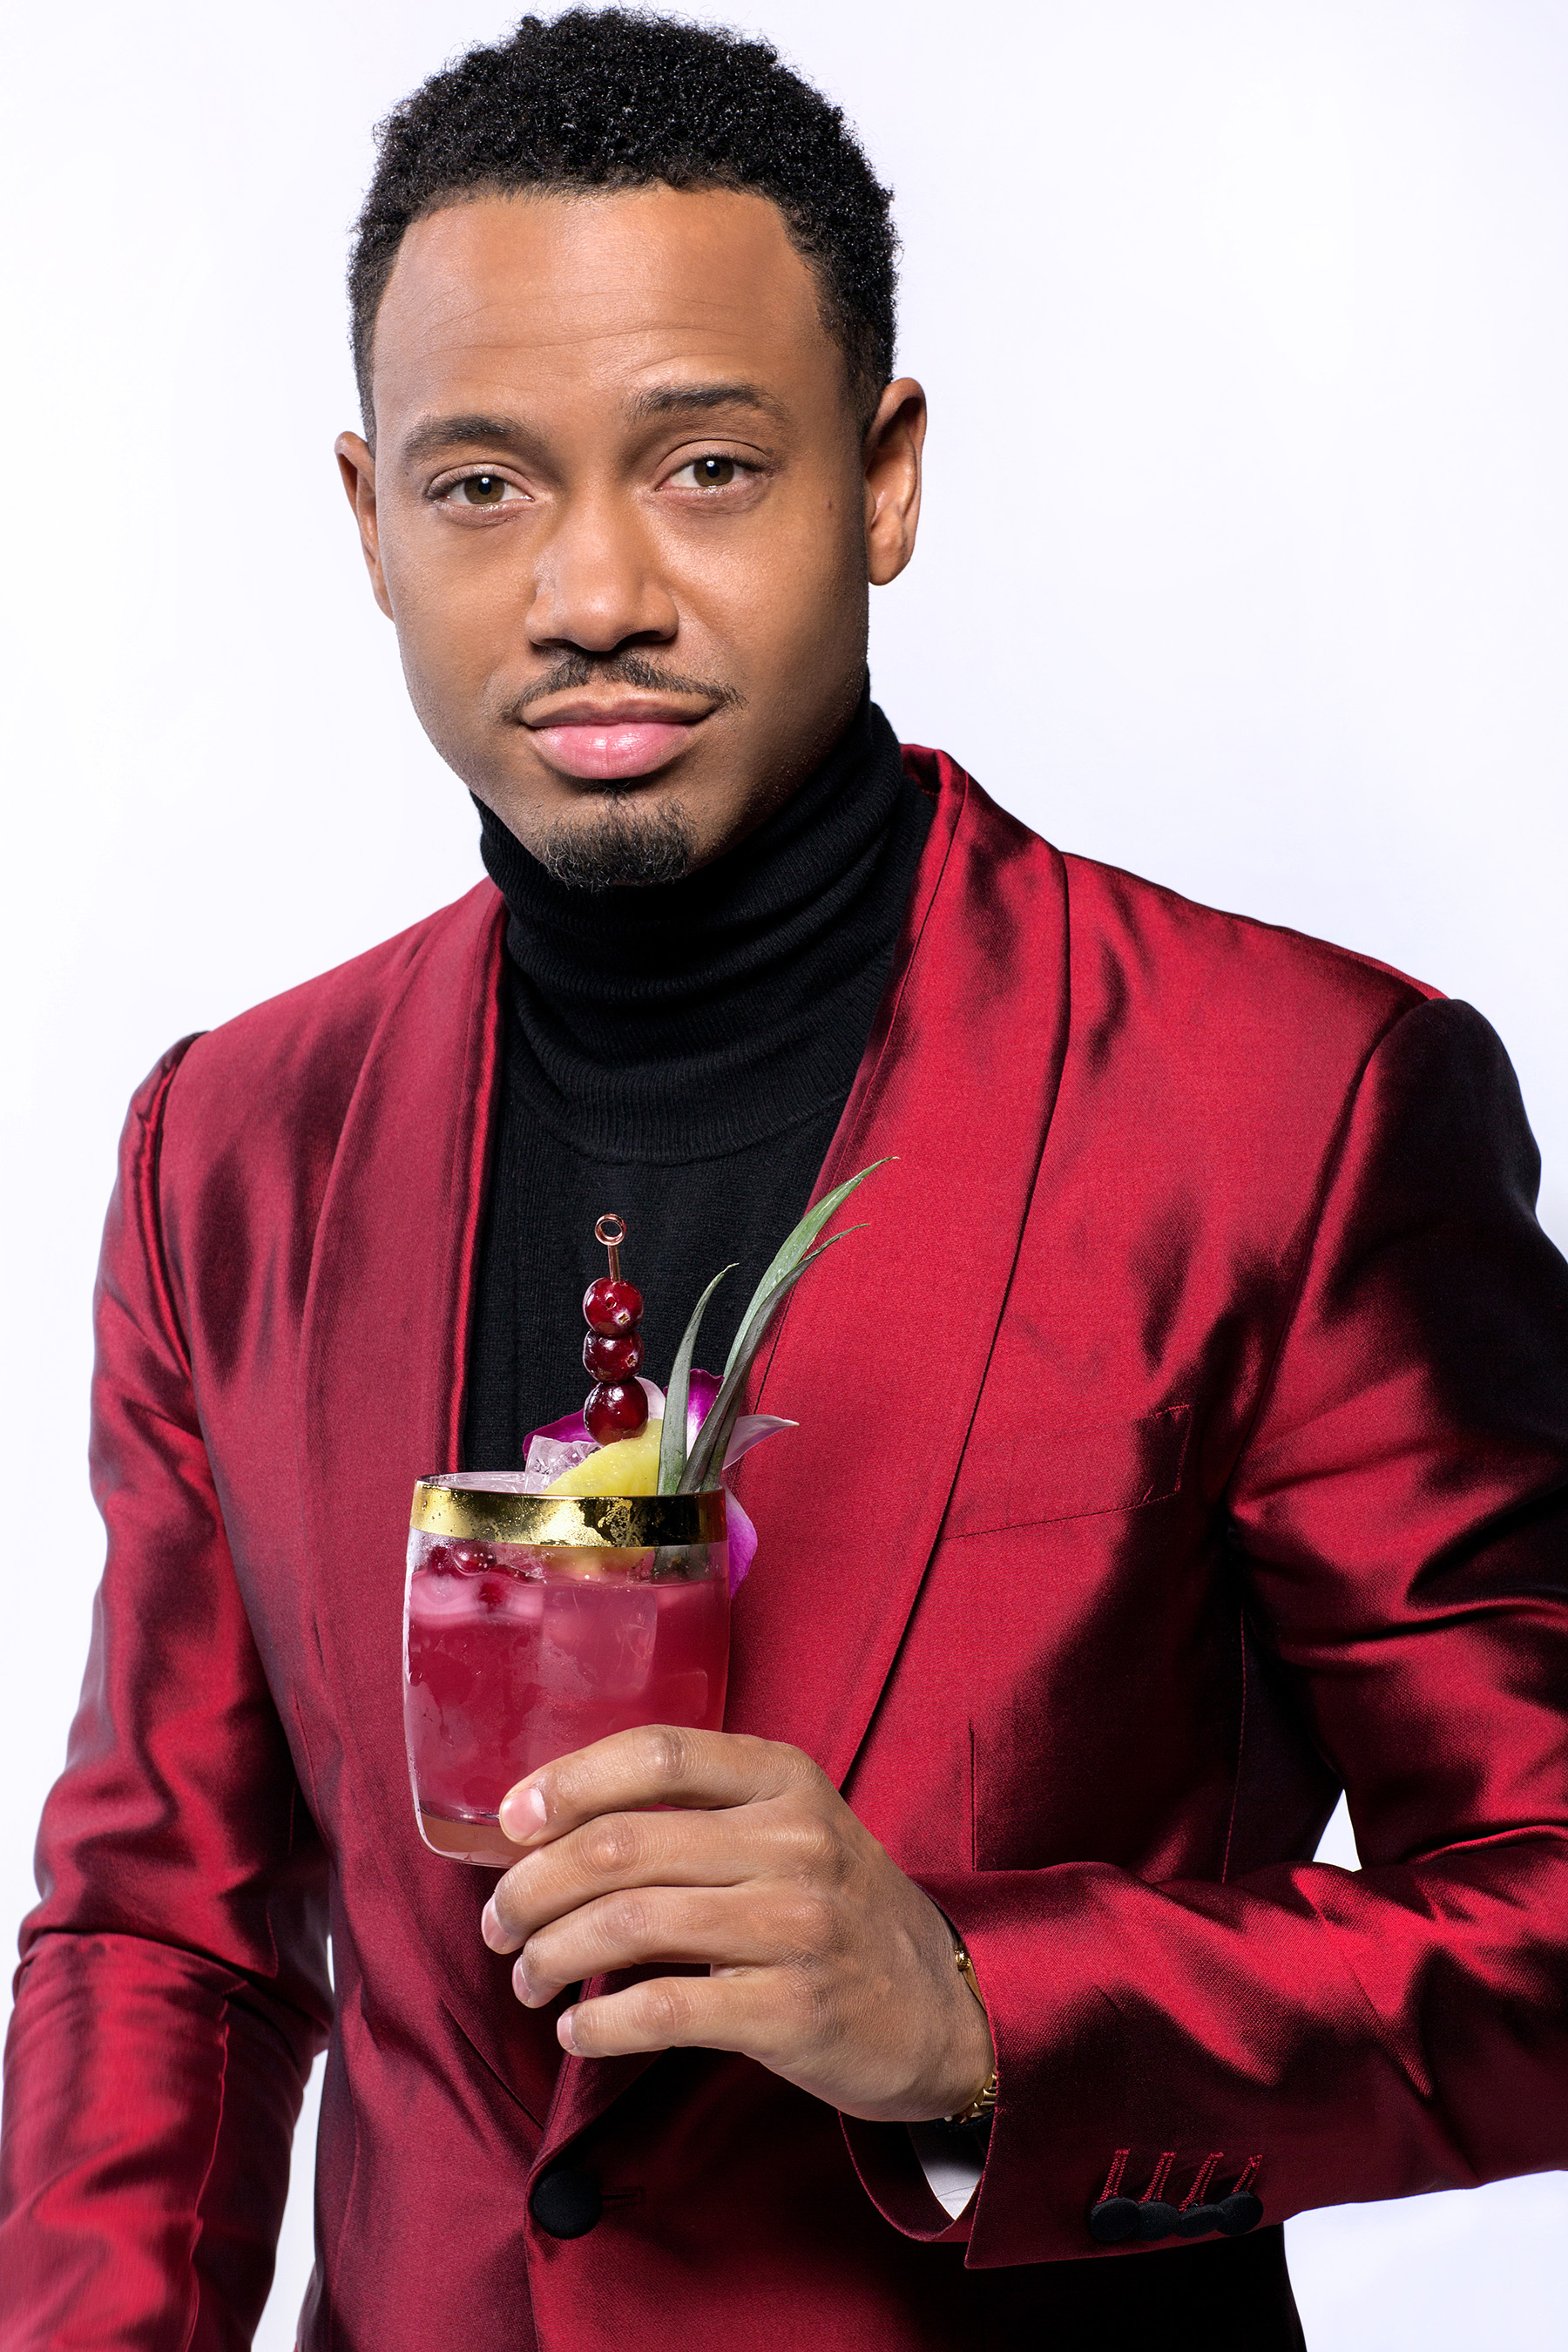 Actor Terrence J. joins forces with Snoop Dogg and other creative, talented artists to be a part of 'The Tanqueray TEN' program